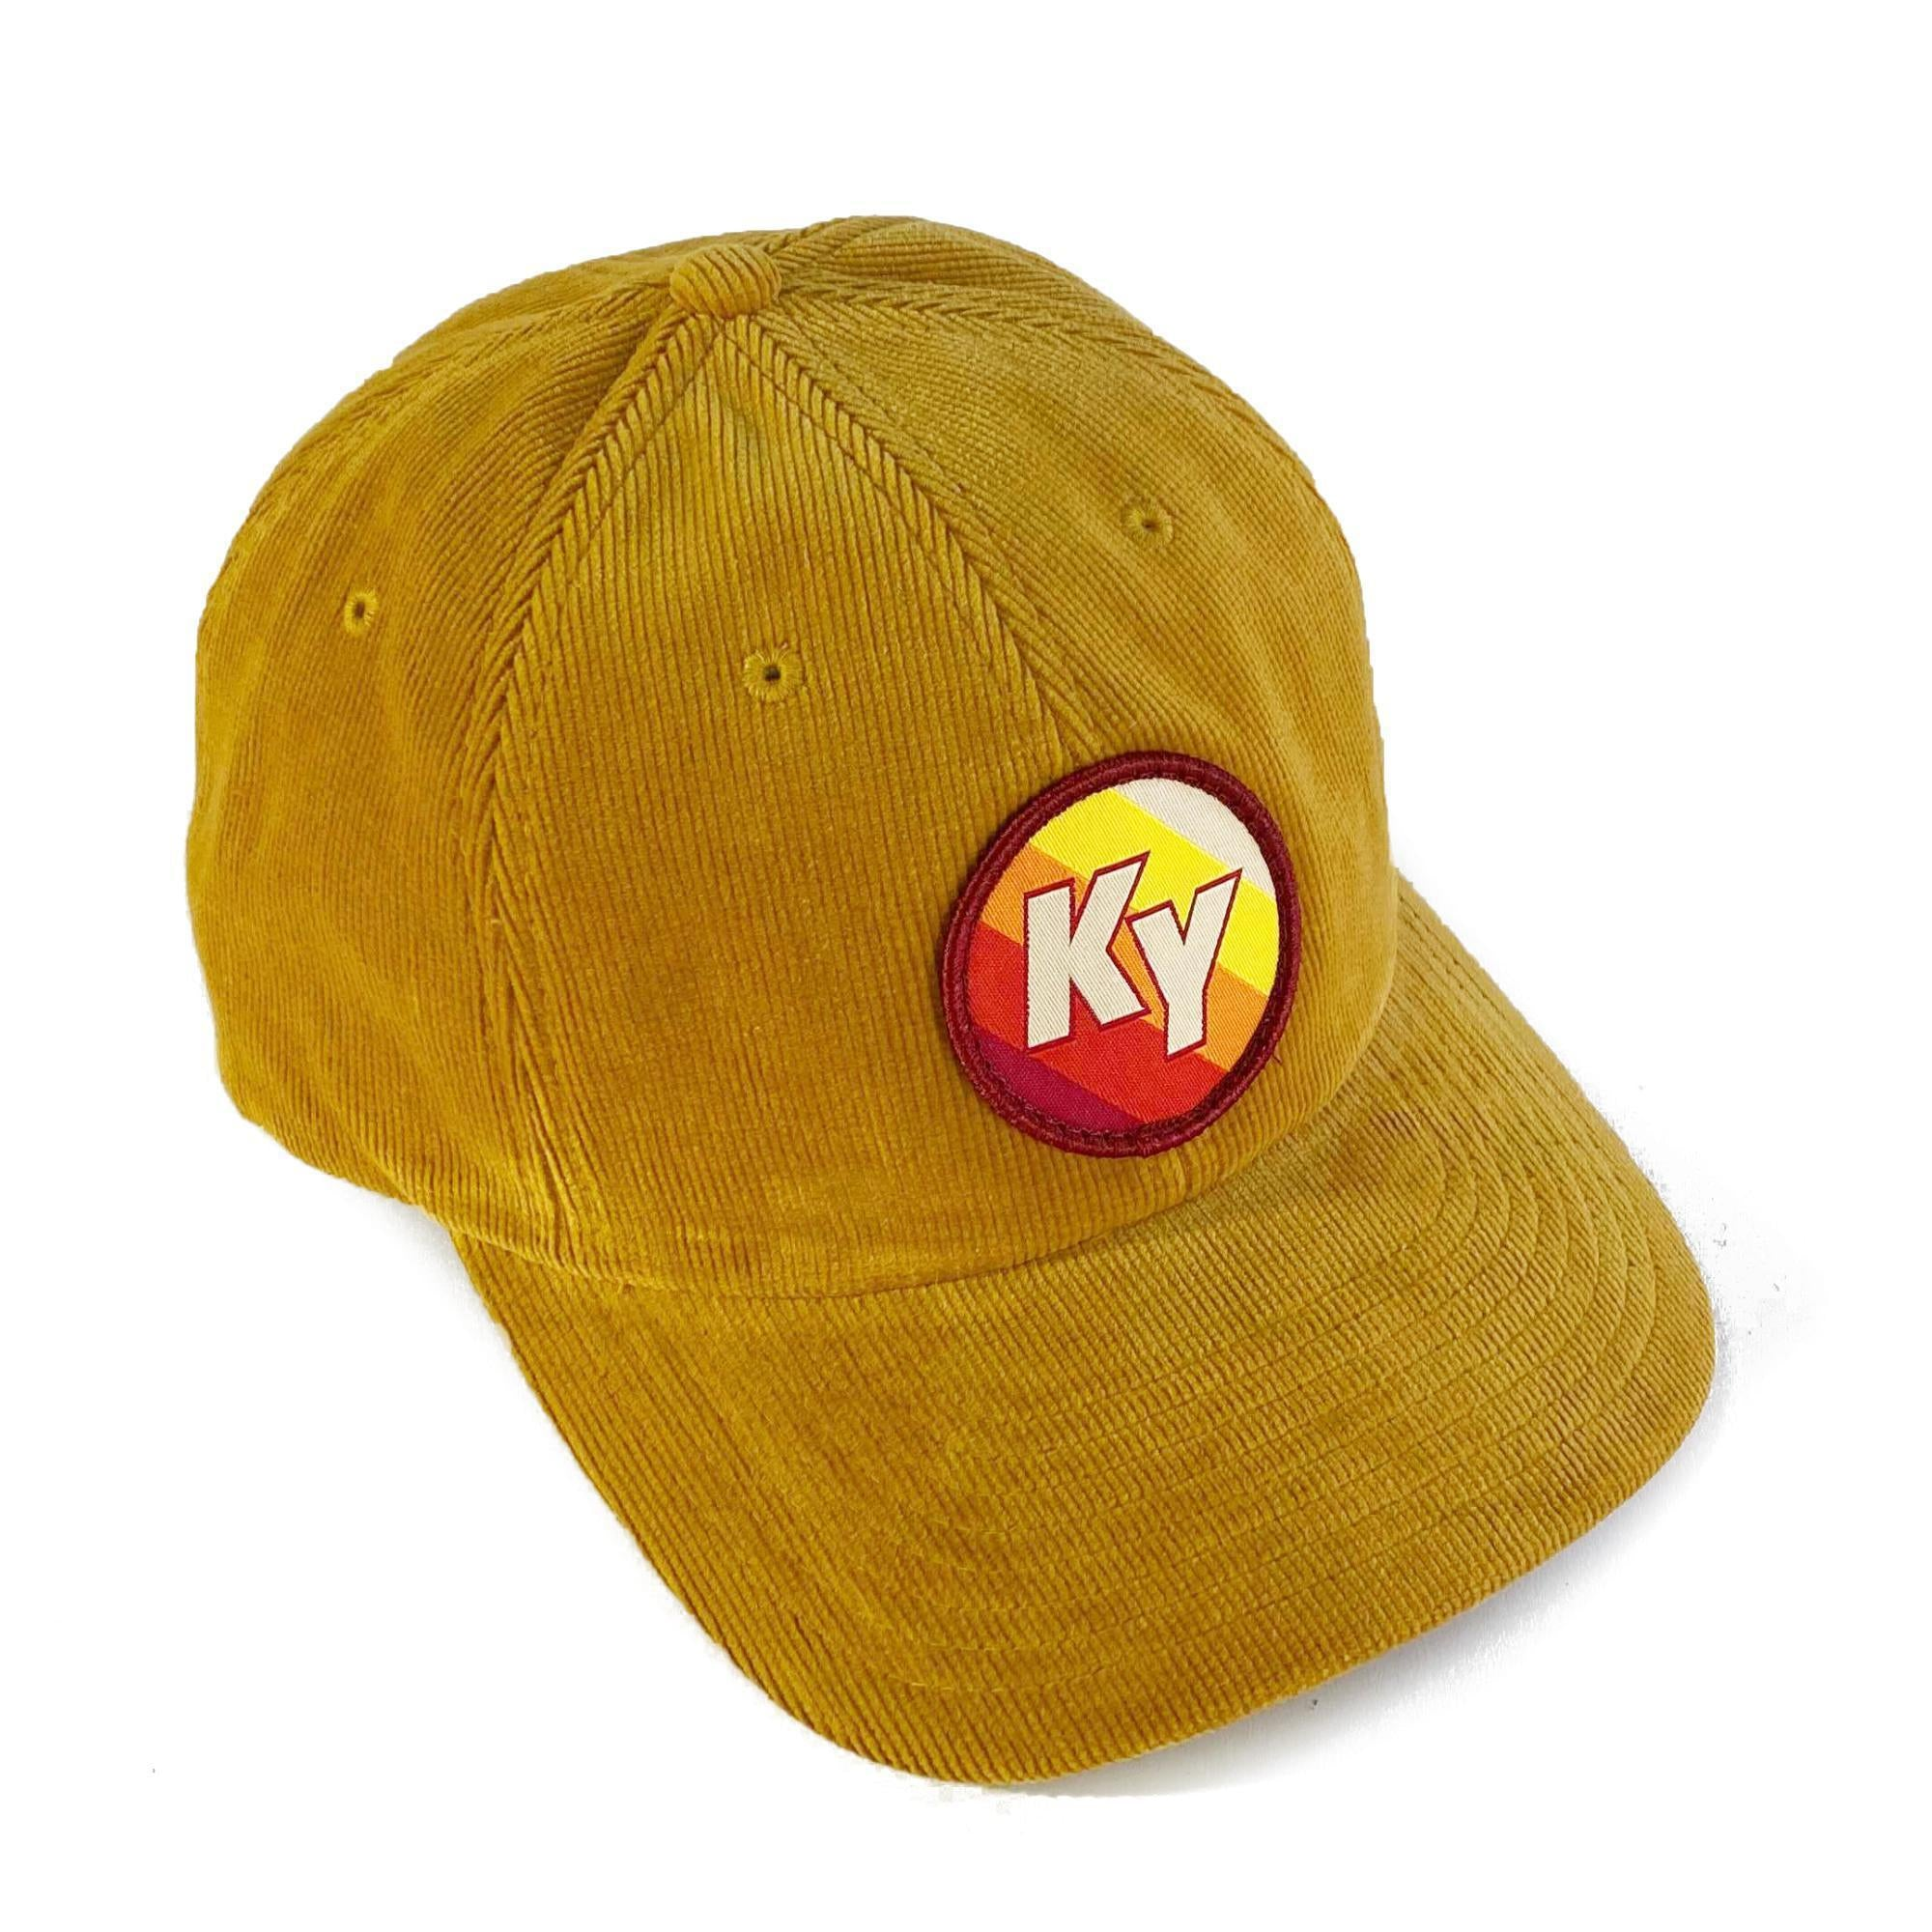 Ky Corduroy Dad Hat (Yellow)-Hat-KY for KY Store